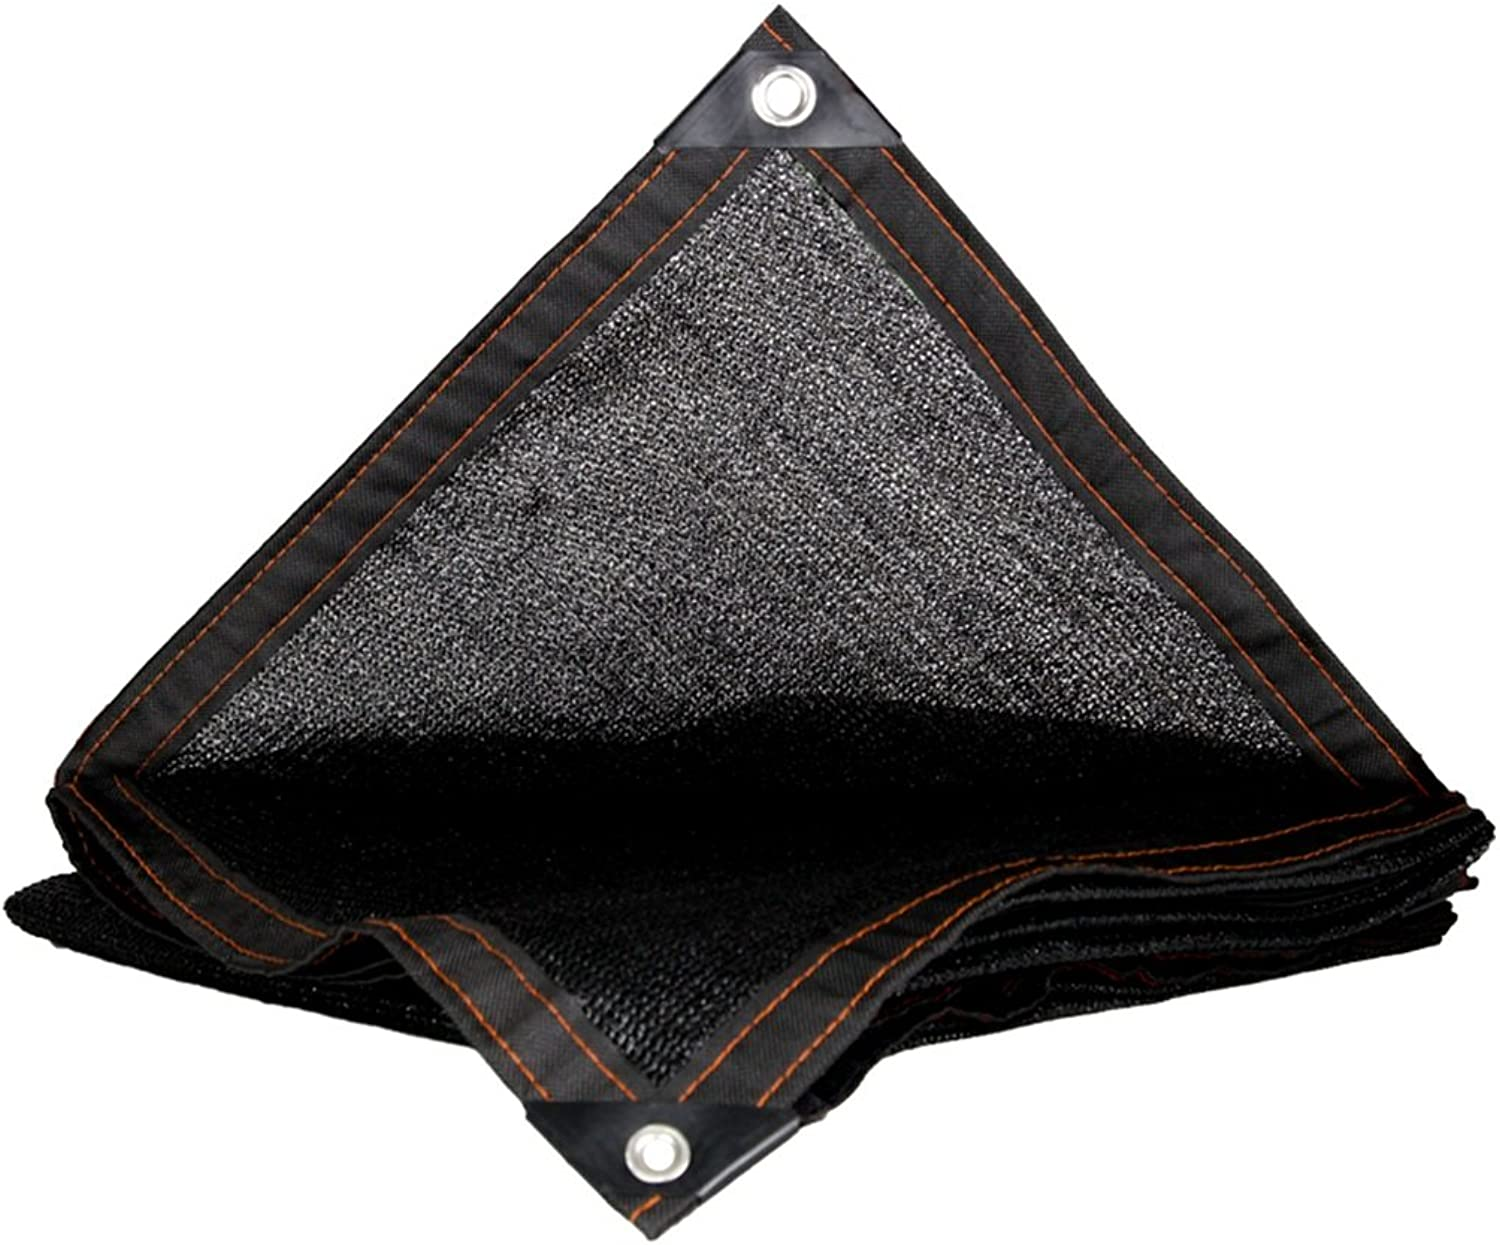 Encrypted Sunshade Tarpaulin, Sunscreen Edging Perforated Tarp Sheet, Thickened Garden Roof, MultiMeat Insulated Tarpaulin (color   Black, Size   2x3M)